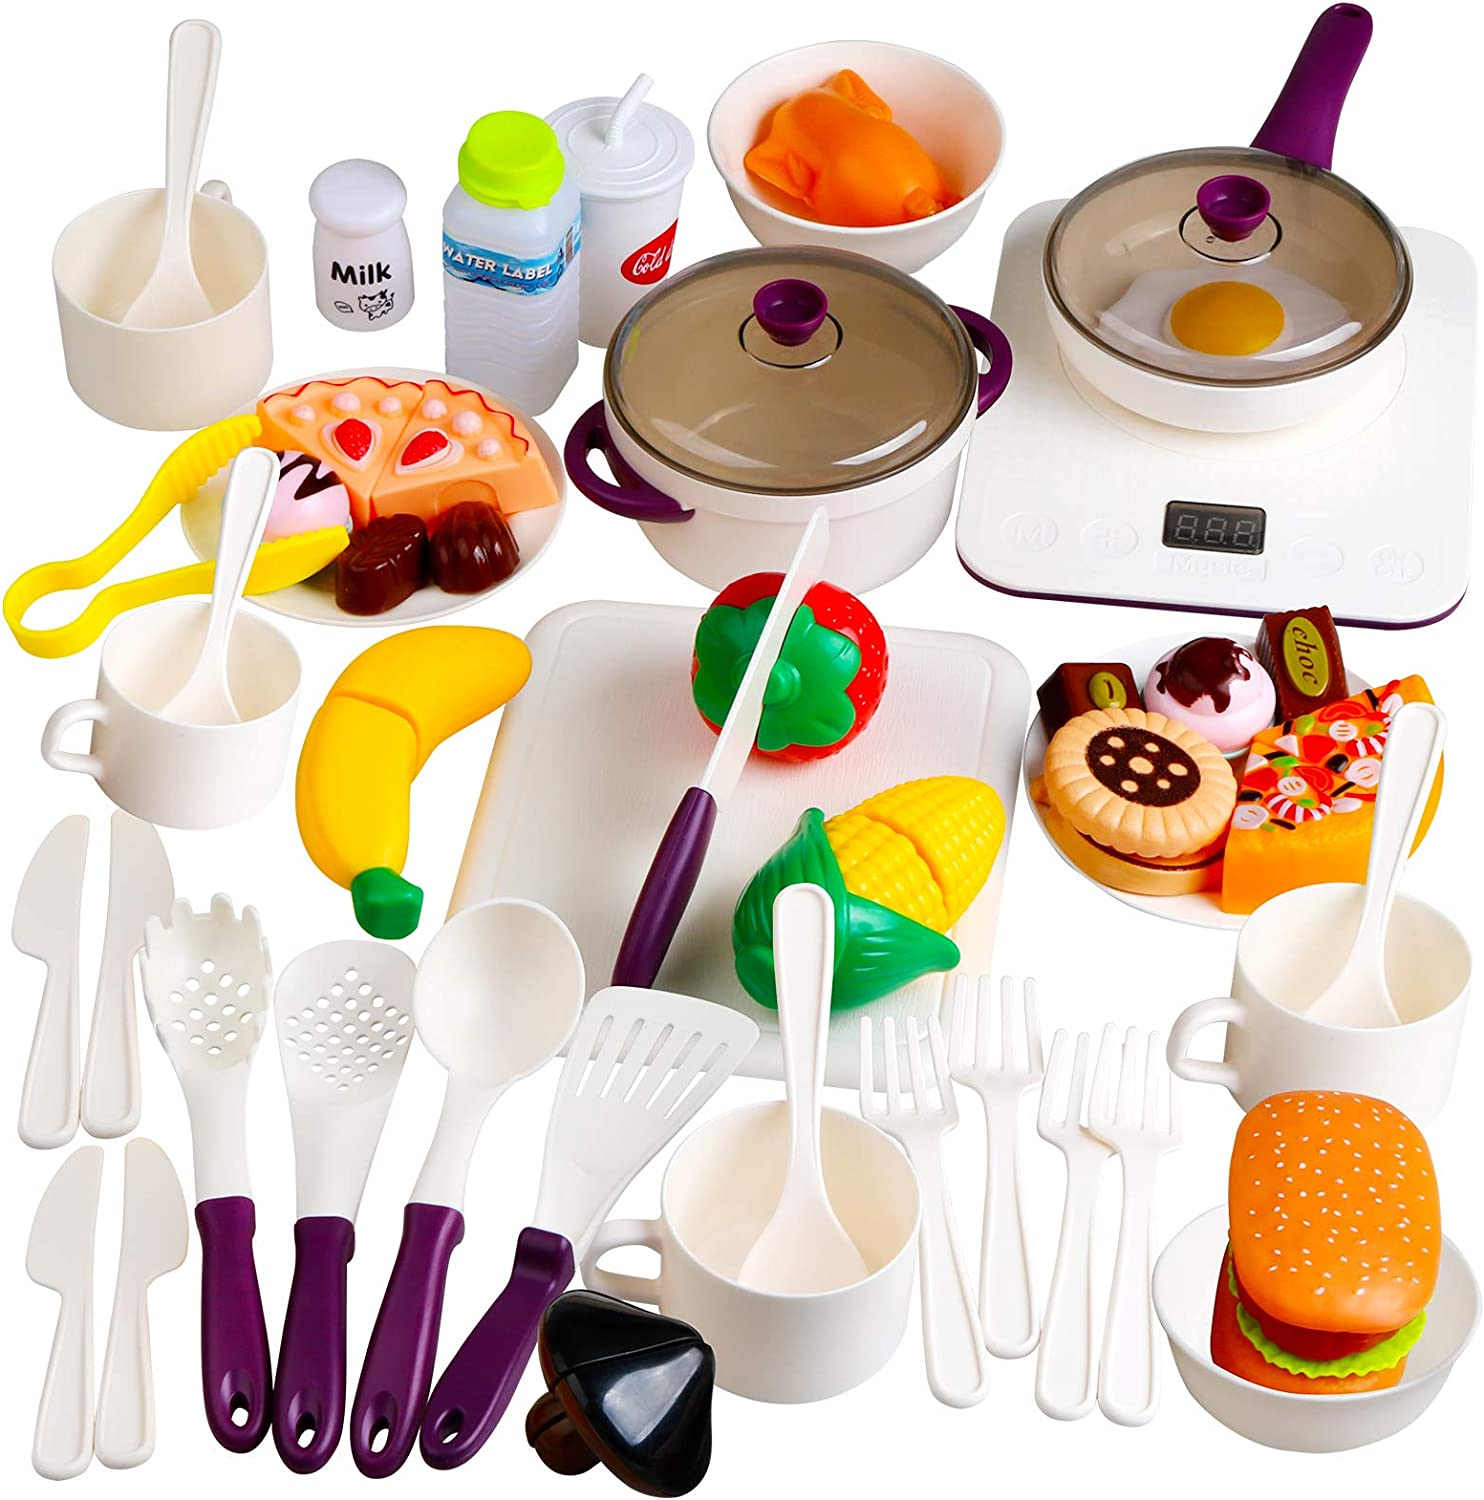 Beletops Kids Kitchen Pretend Play Toys 53PCS Cooking Set Pots and Pans Playset, Peeling and Cutting Play Food Toys Cooking Utensils Learning Gift for Toddlers, Children, Boys, Girls, Kids - White